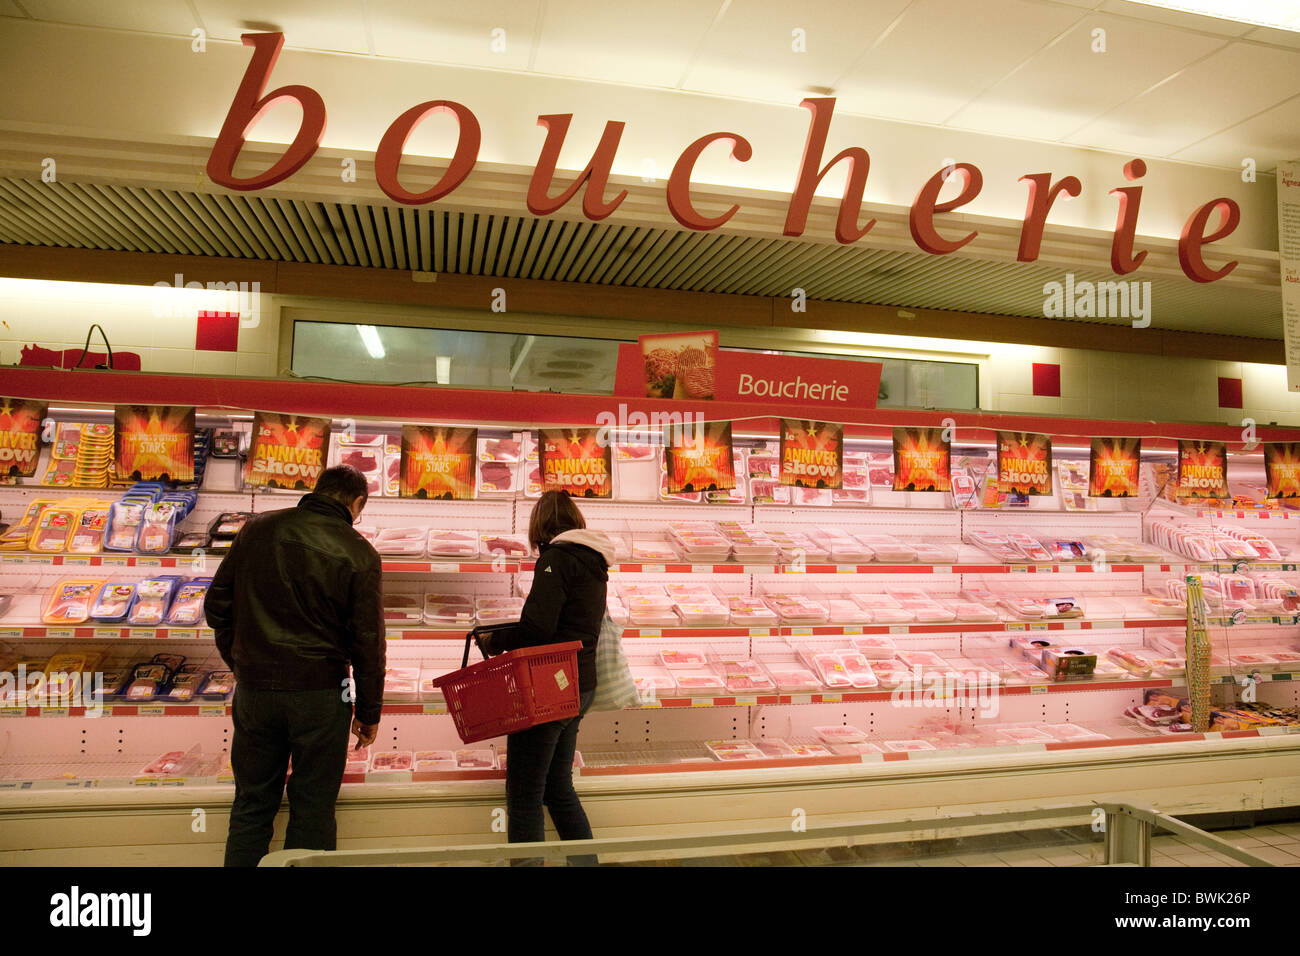 French Butcher Shop Stock Photos & French Butcher Shop Stock ...